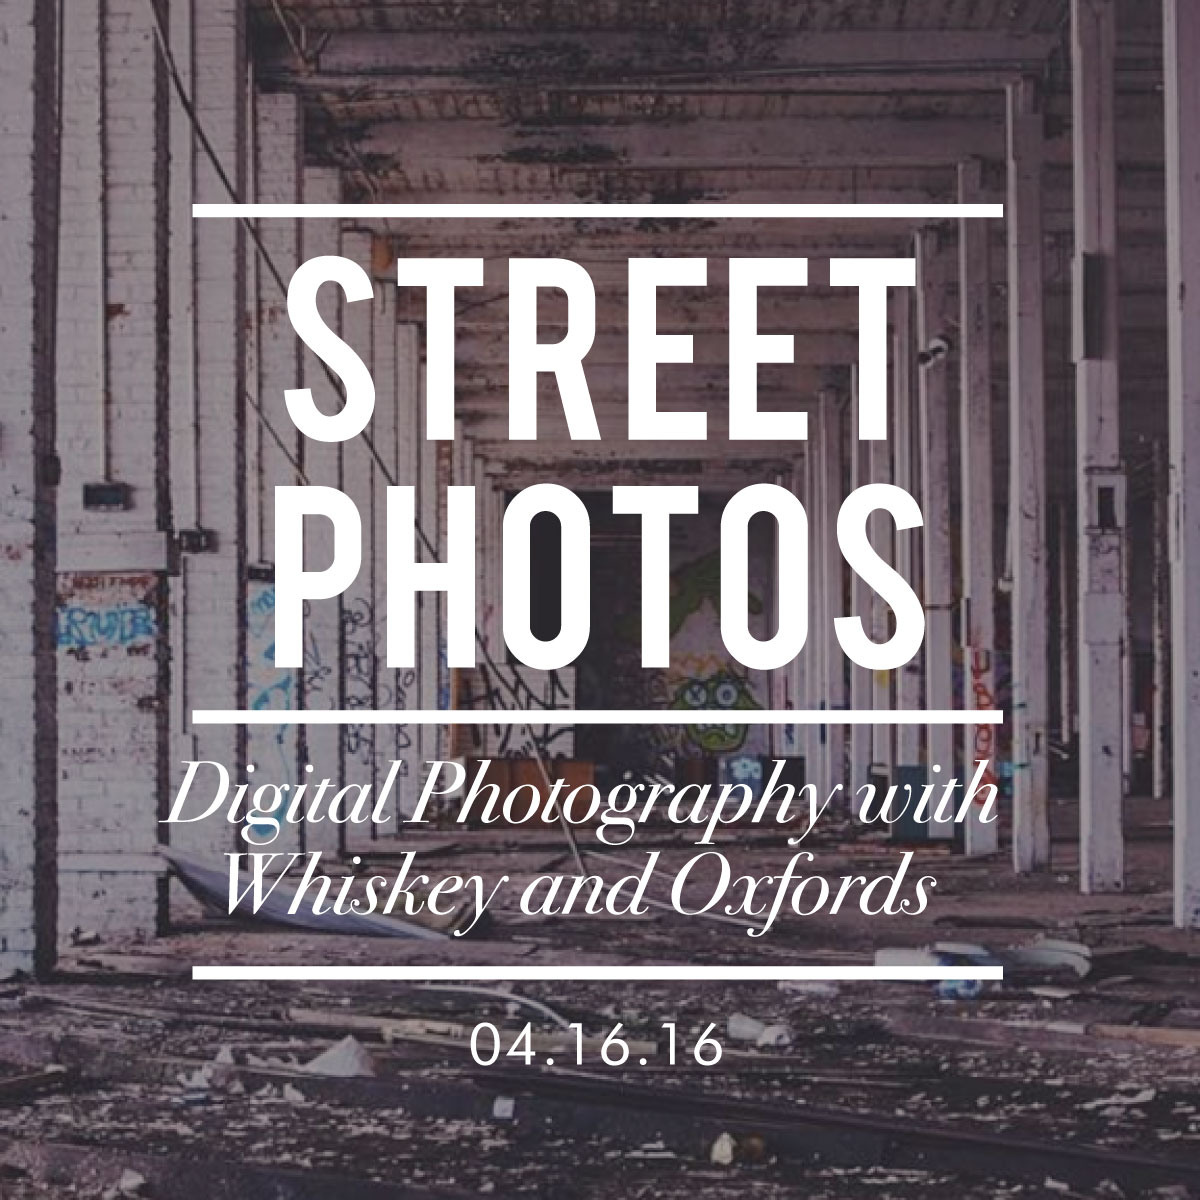 http://hartfordprints.com/shop/street-photography-digital-photography-whiskey-oxfords-april-16th-2016/